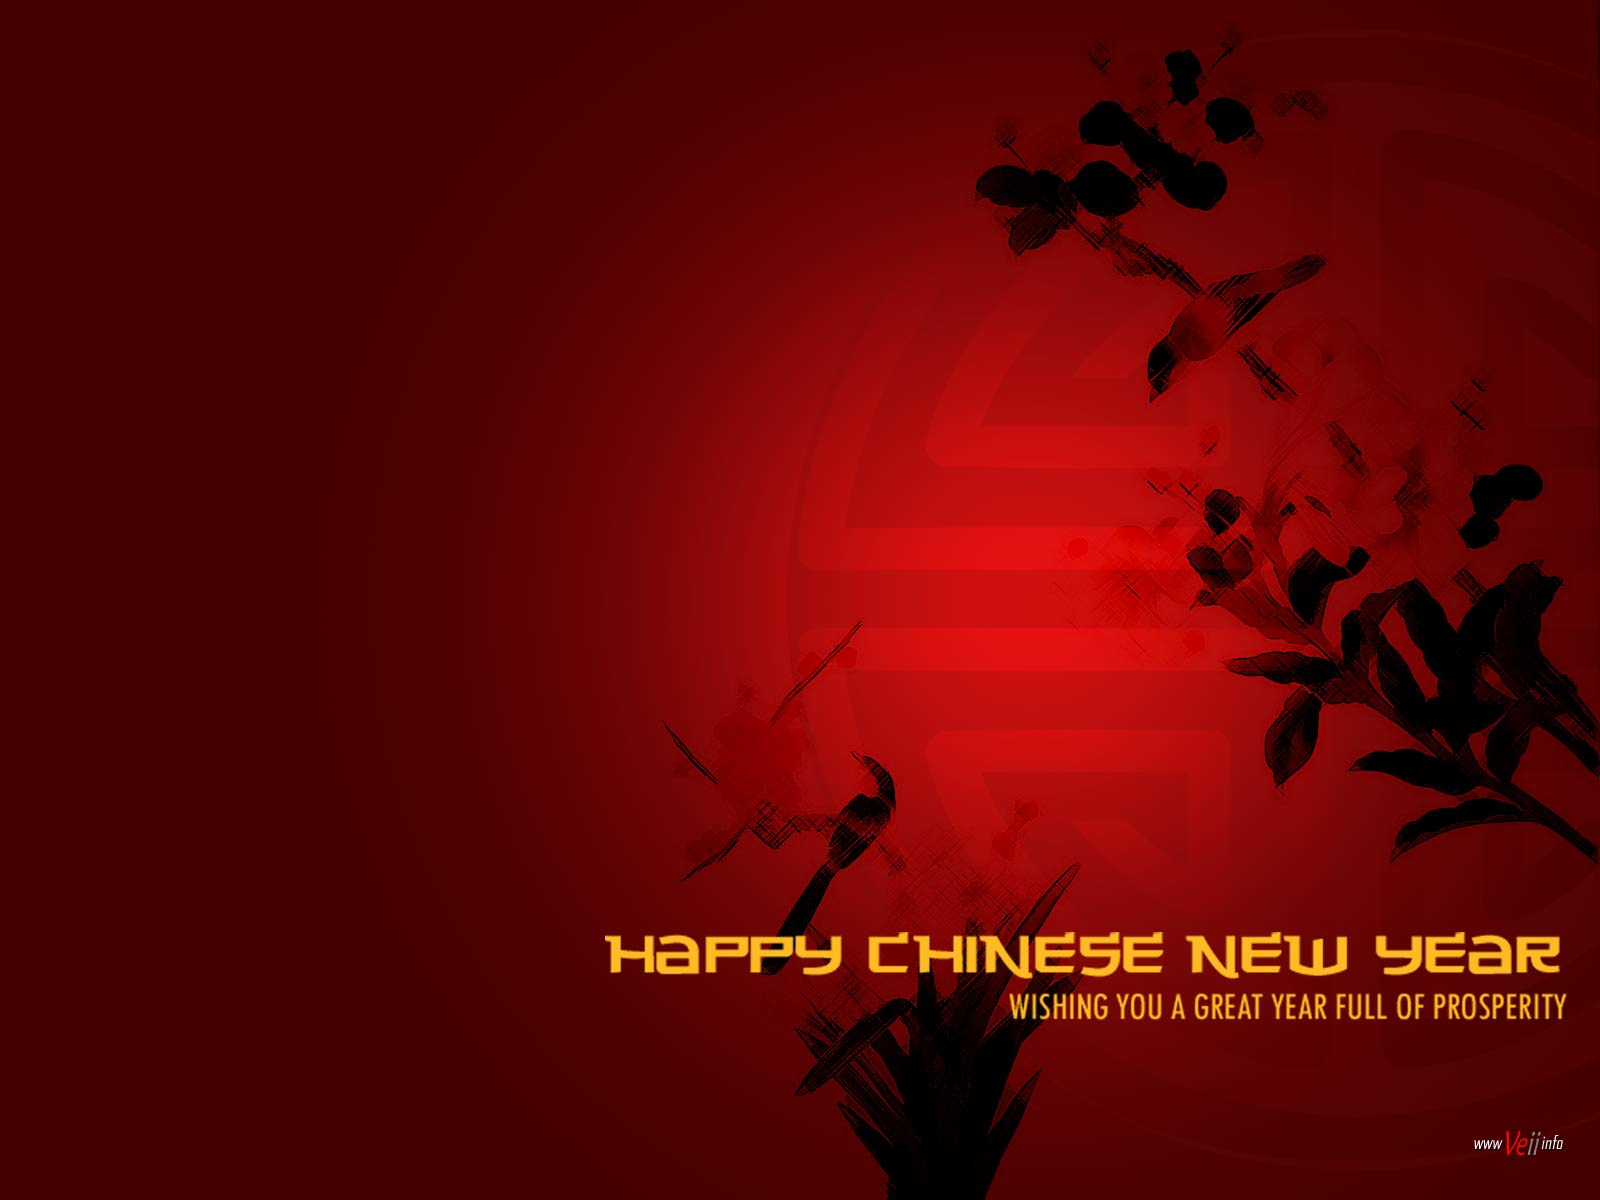 chinese new year powerpoint - gse.bookbinder.co, Powerpoint templates